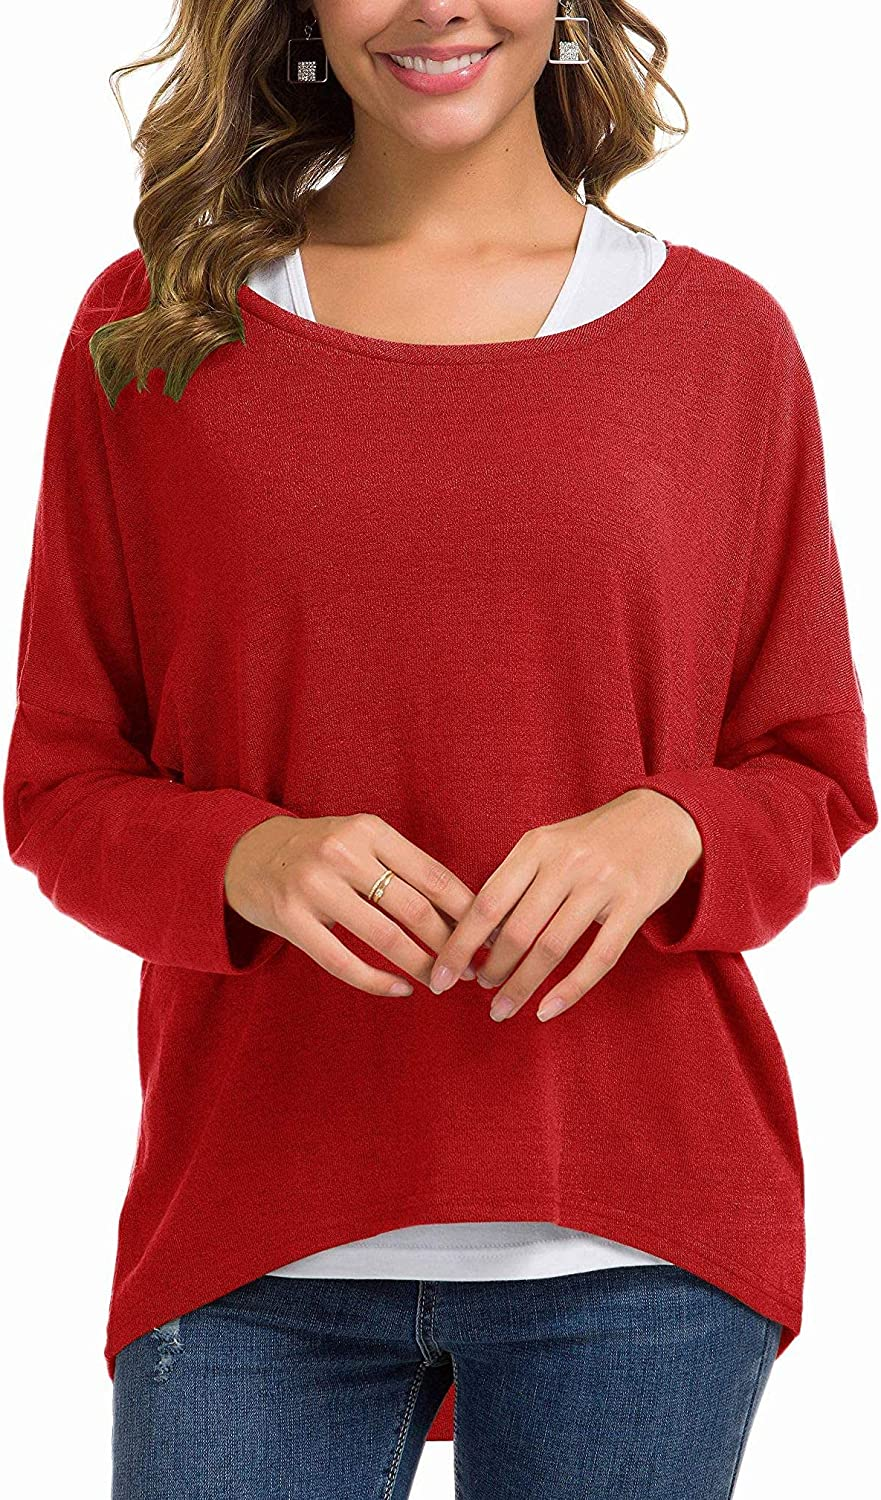 UGET Women's Oversized Baggy Tops Loose Fitting Pullover Casual Blouse T-Shirt Sweater Batwing Sleeve